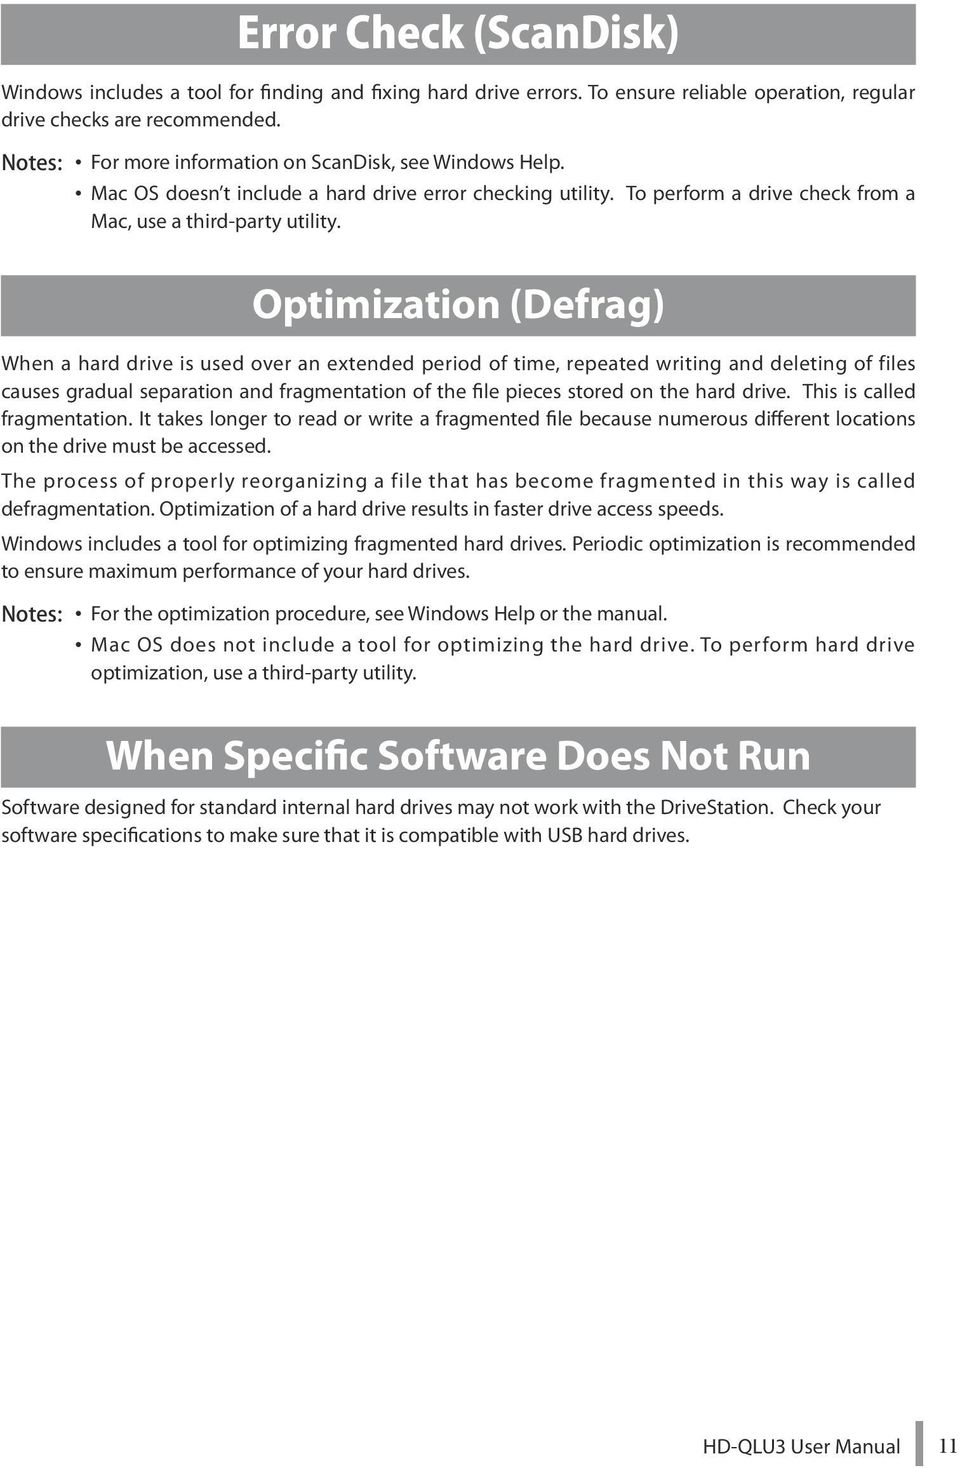 Optimization (Defrag) When a hard drive is used over an extended period of time, repeated writing and deleting of files causes gradual separation and fragmentation of the file pieces stored on the